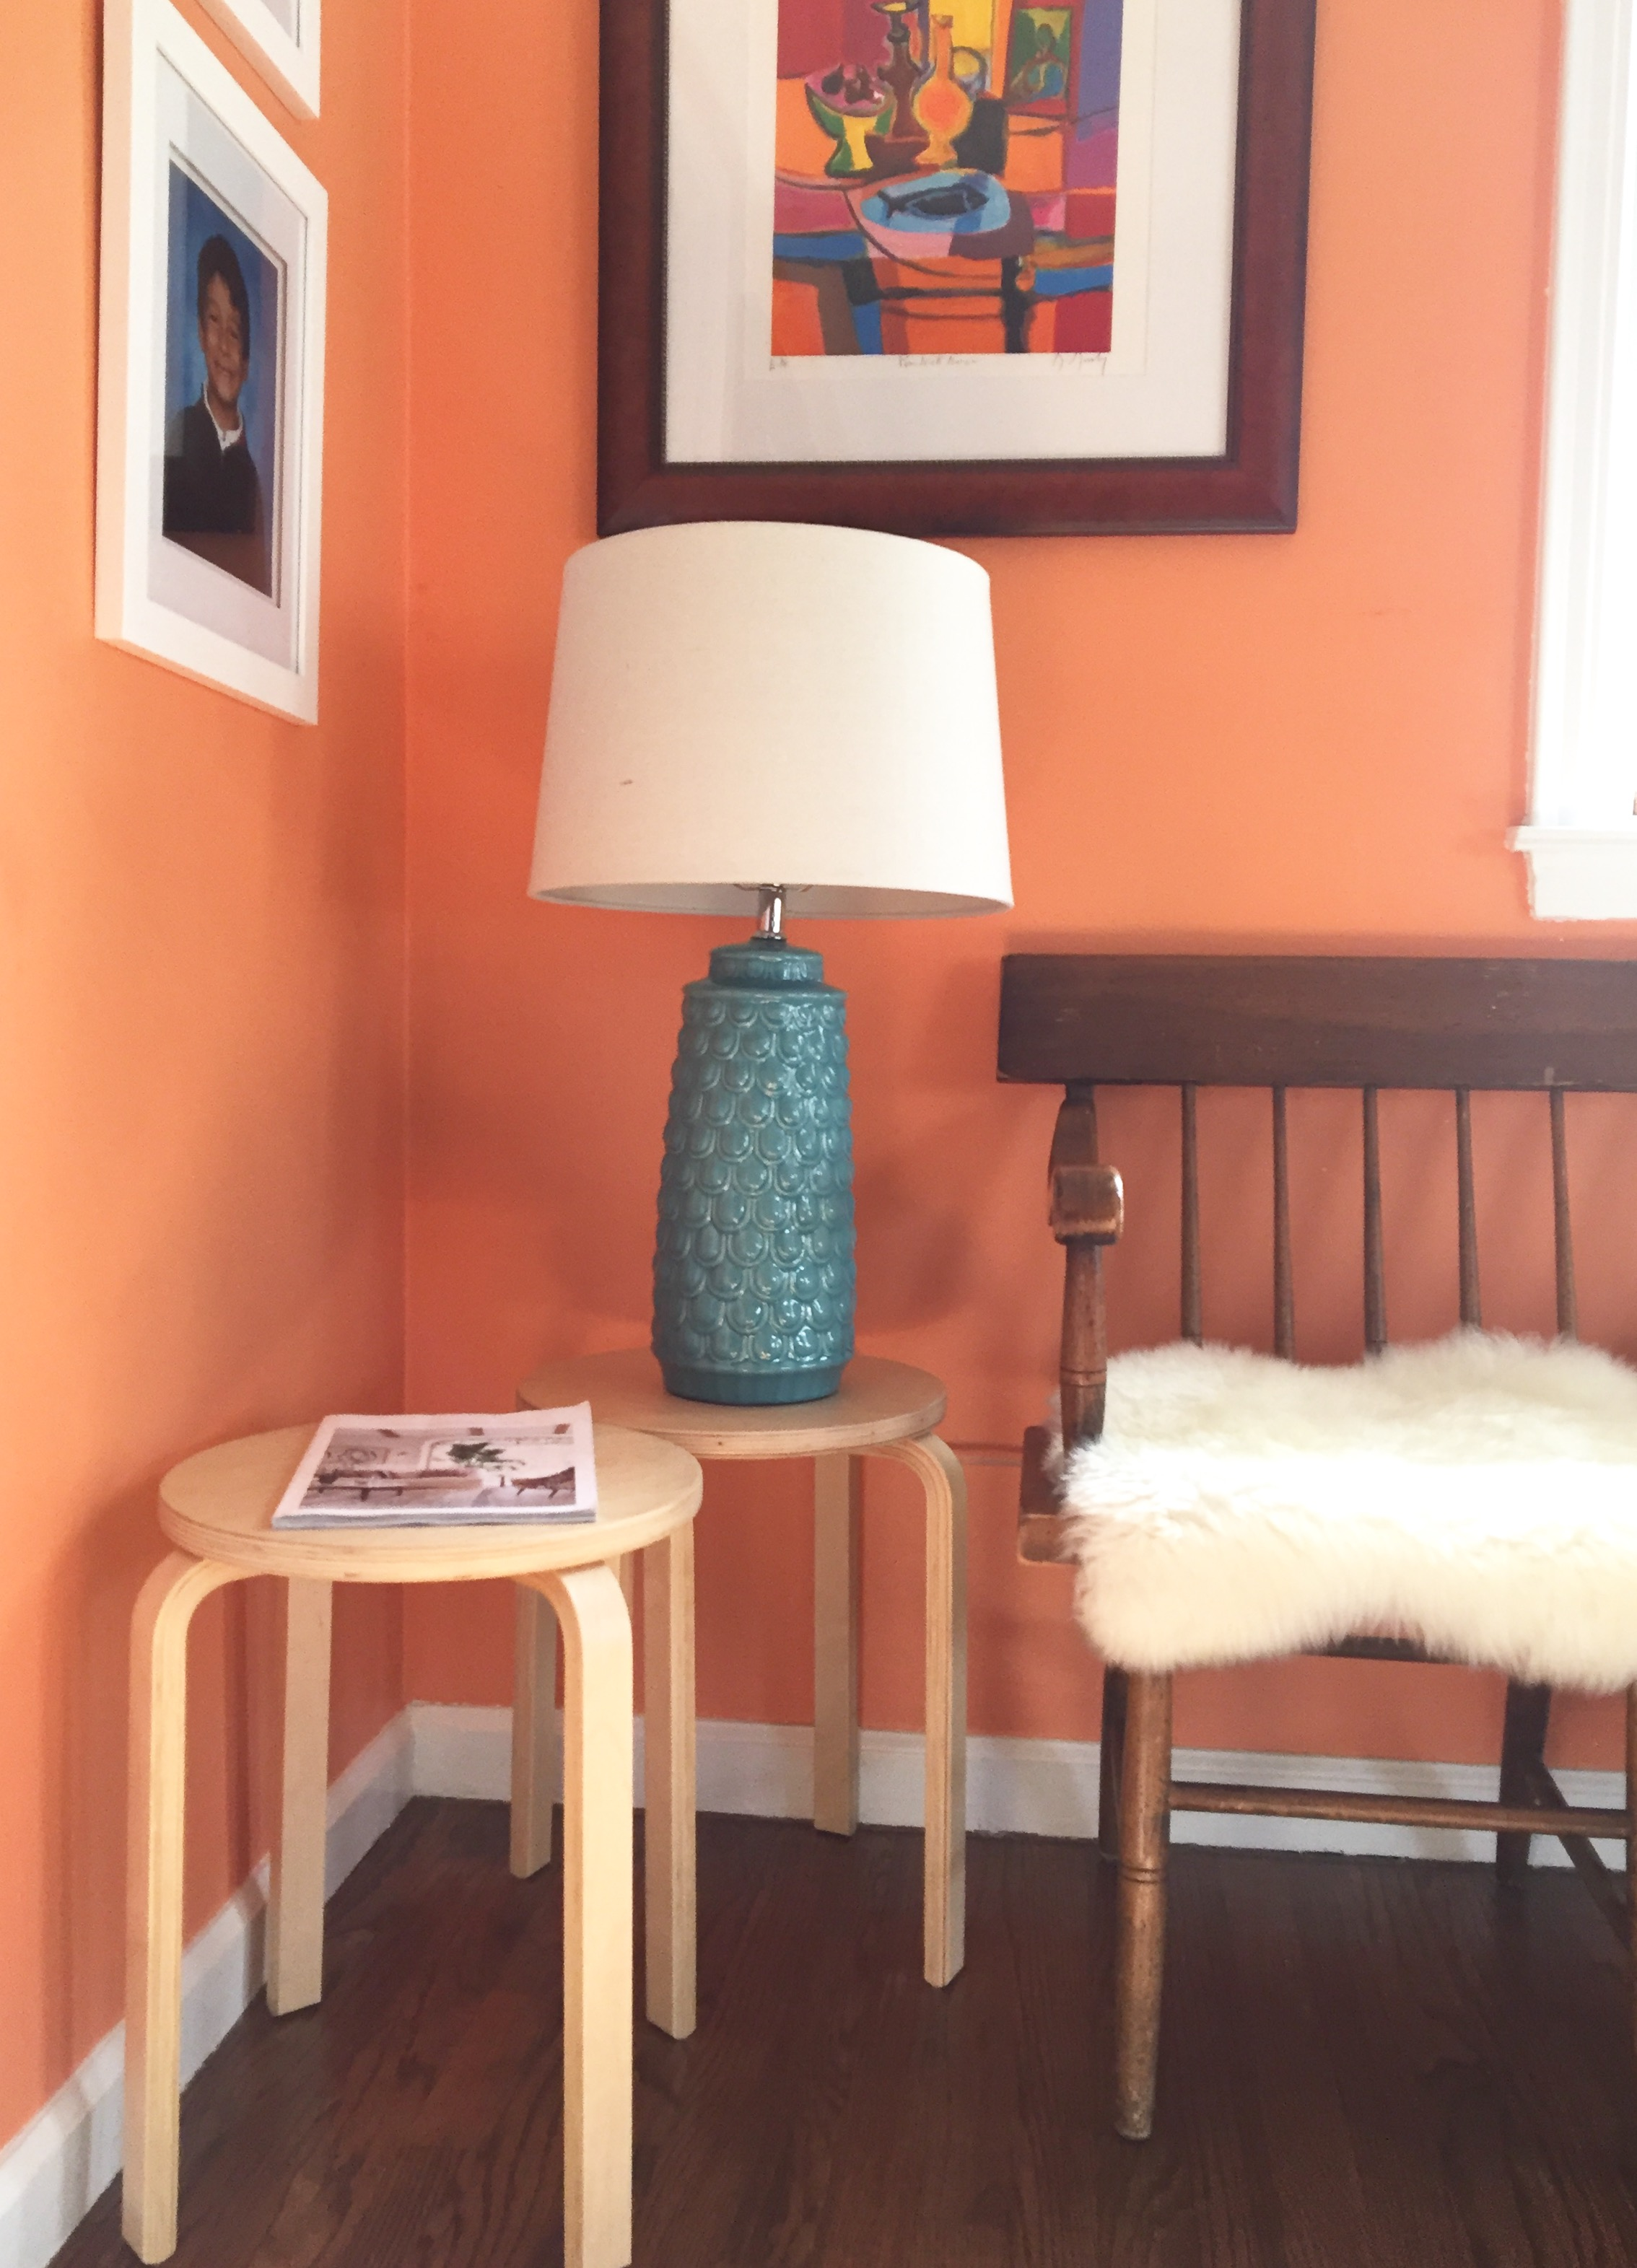 And here's a close-up of the lamp and mail tables, in a world where my only mail is an Anthropologie catalog (and I just lounge around flipping thru it and eating bon-bons -  VERY  realistic).